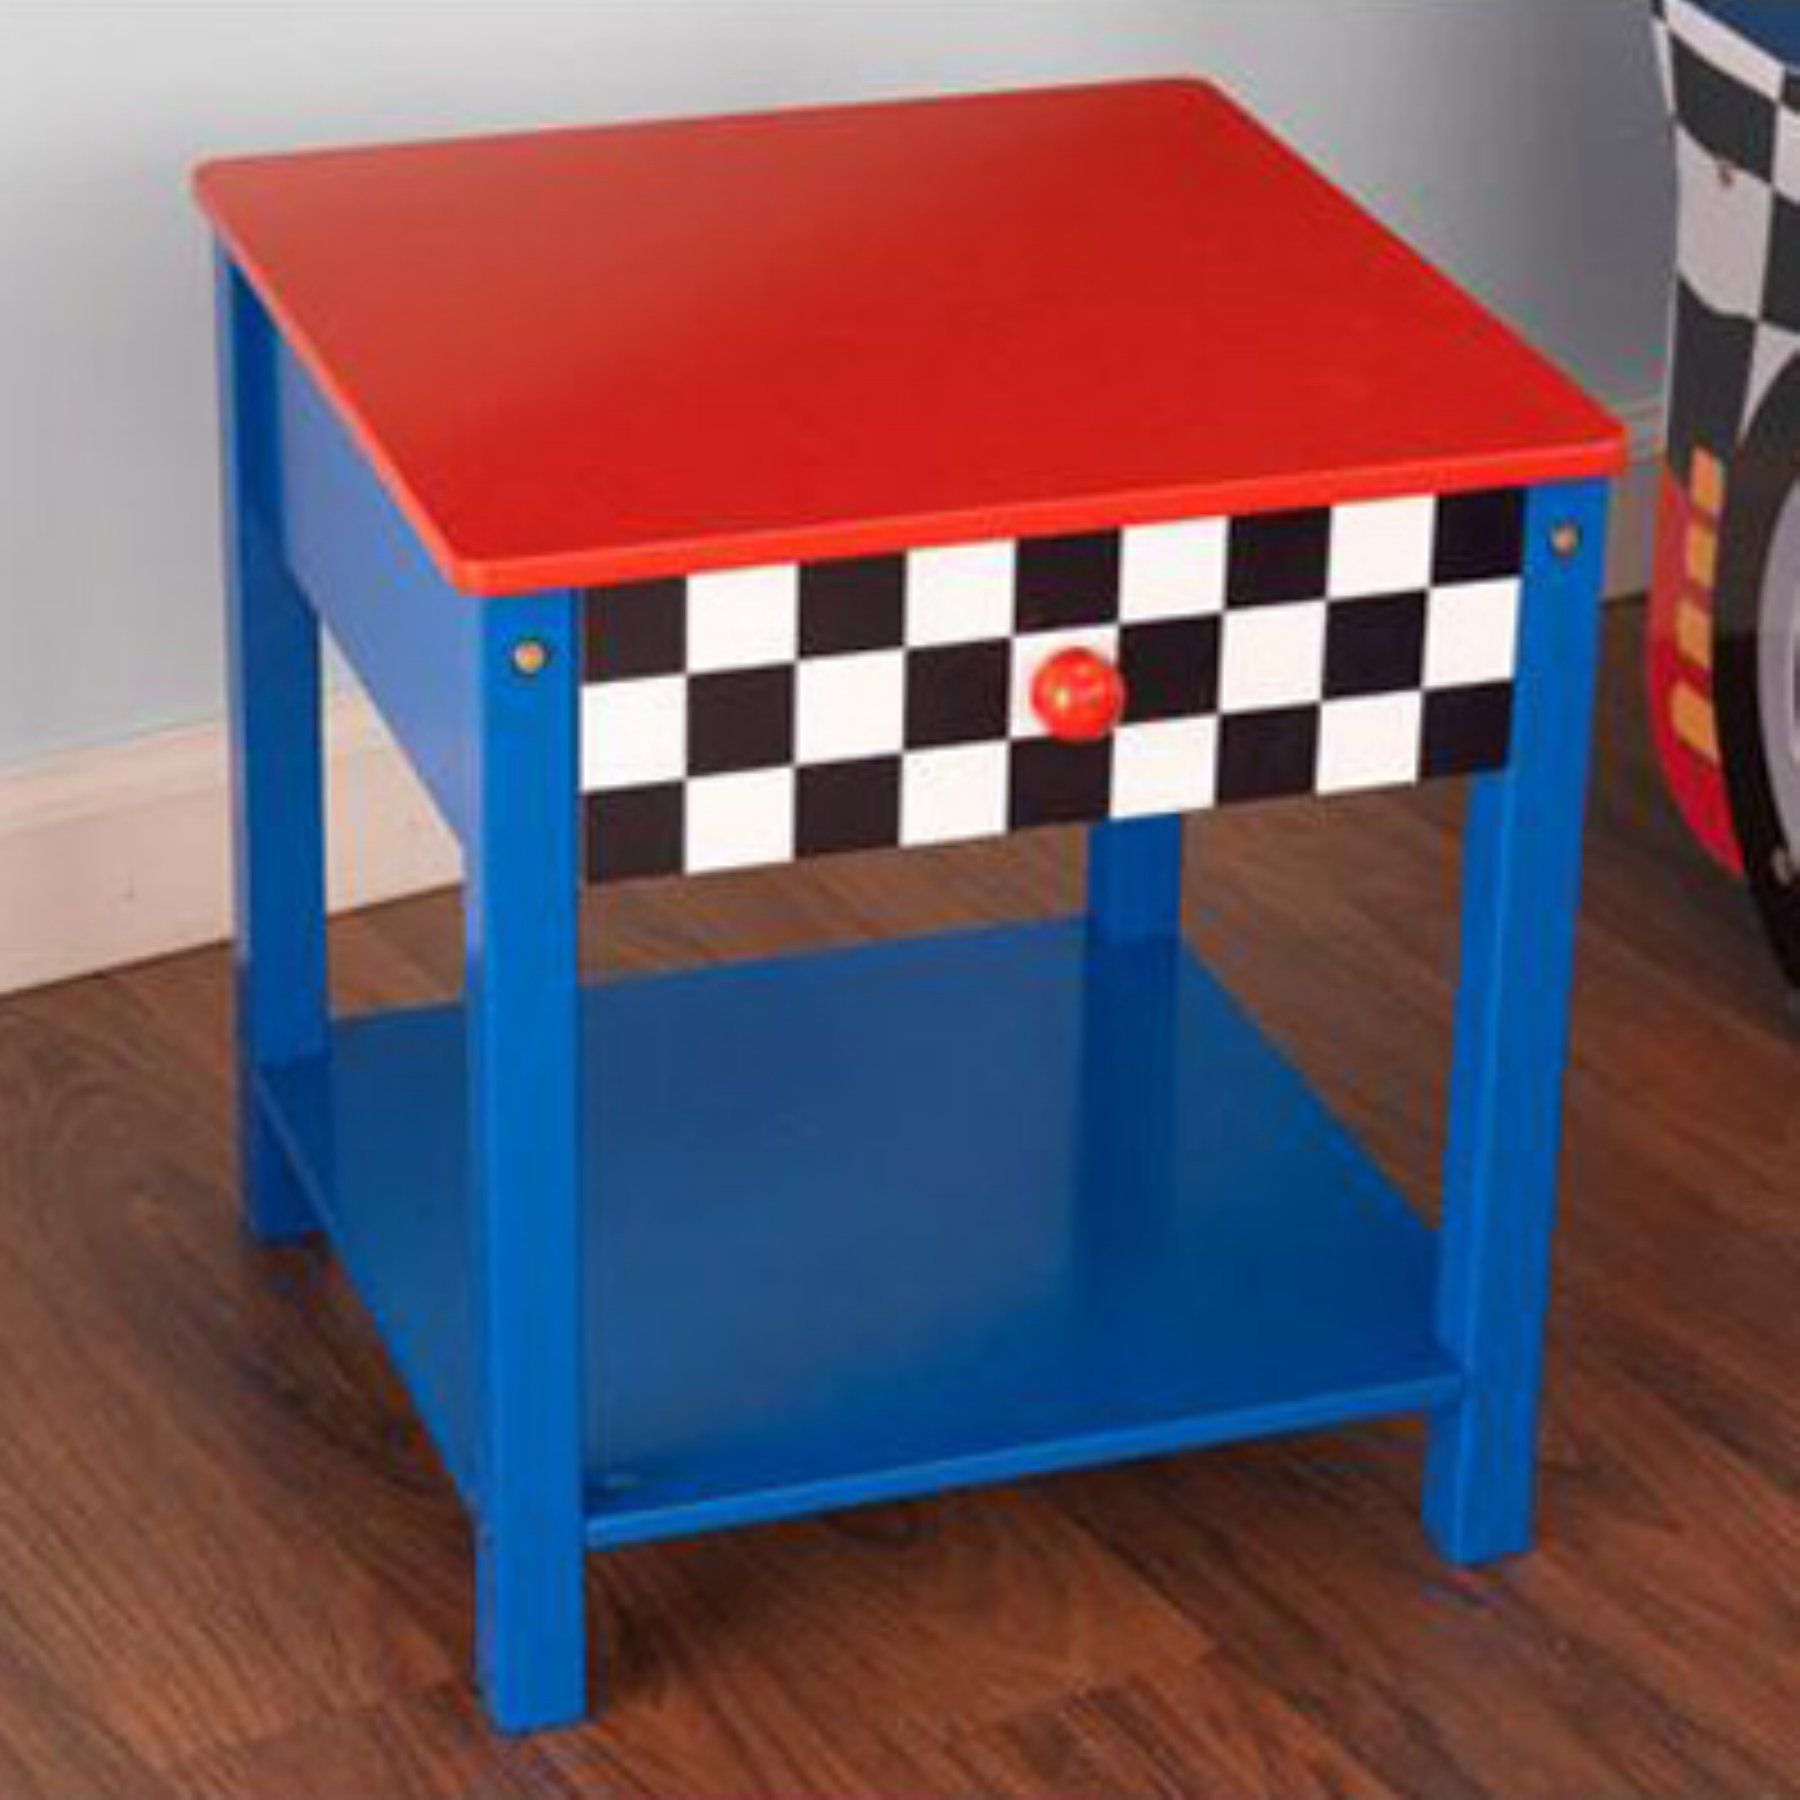 Incredible Kidkraft Race Car Side Table 76041 76041 Products In Download Free Architecture Designs Scobabritishbridgeorg